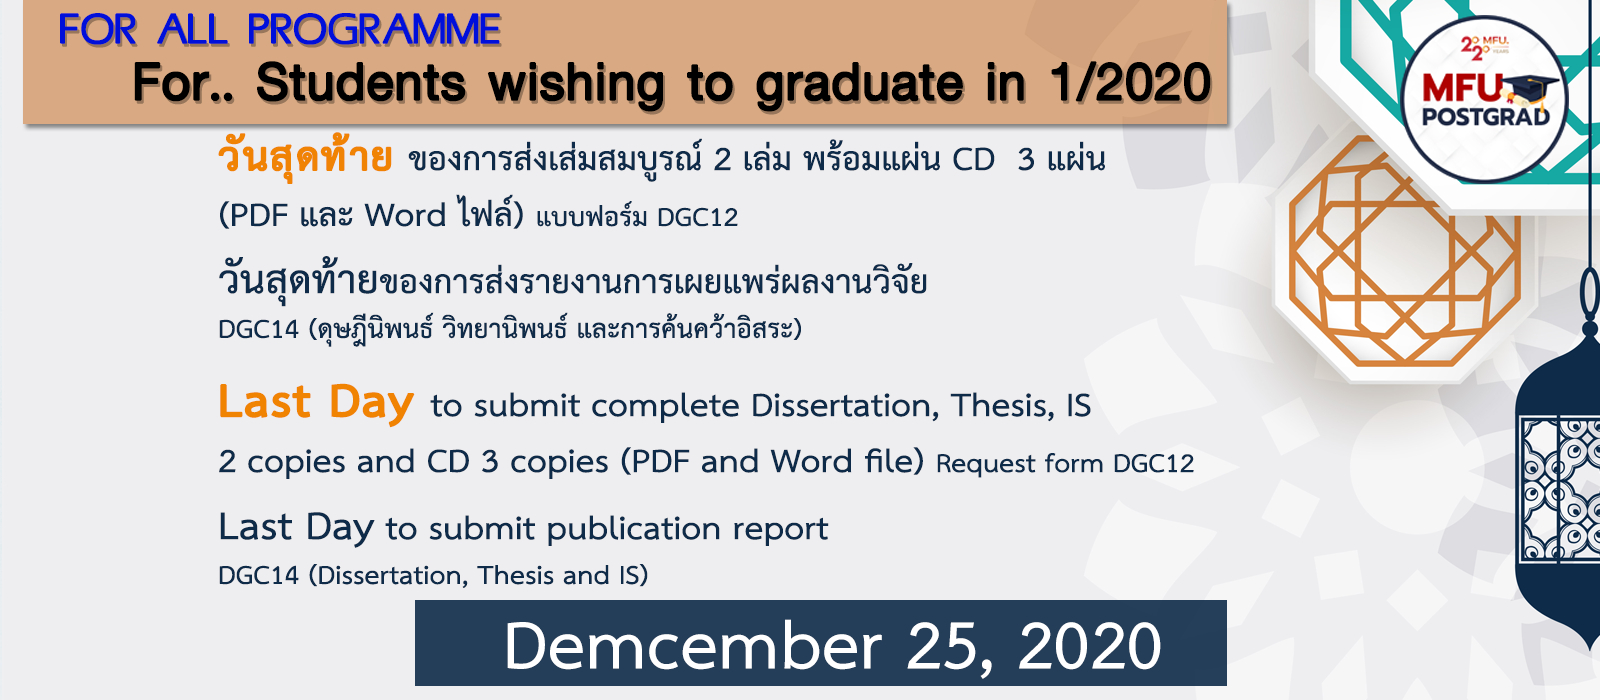 Last Day to submit complete Dissertation, Thesis, IS (DGC 12) 1/2020